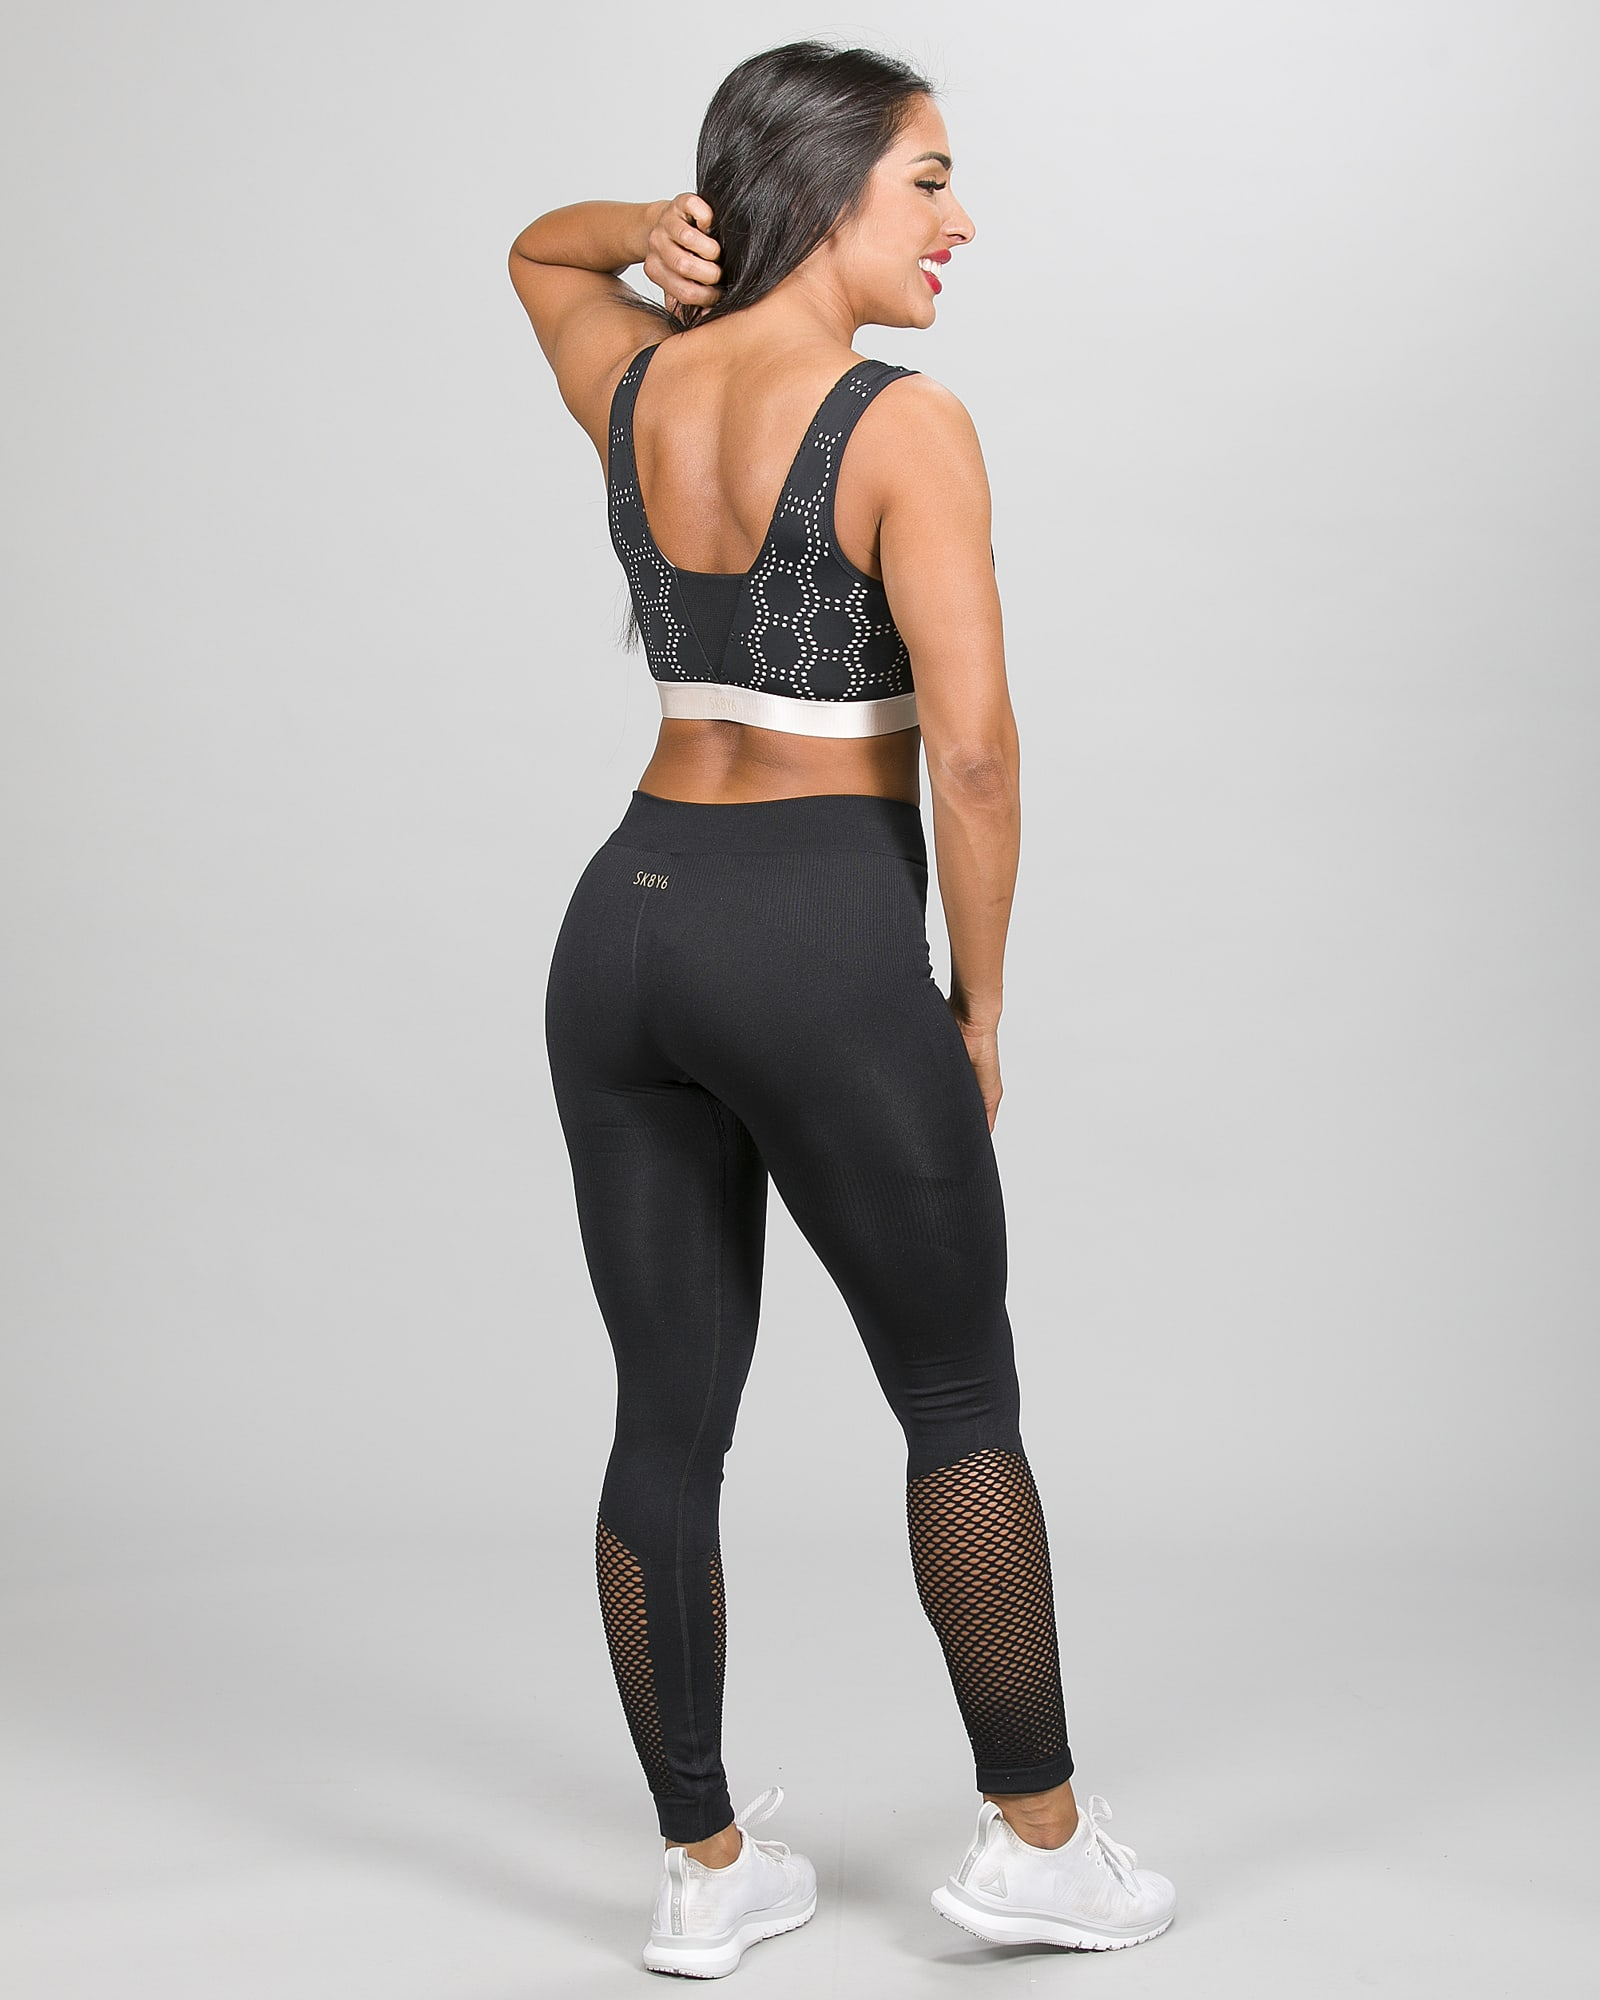 Skiny SK86 Running Tights 082877 og Crop Top 083093 e